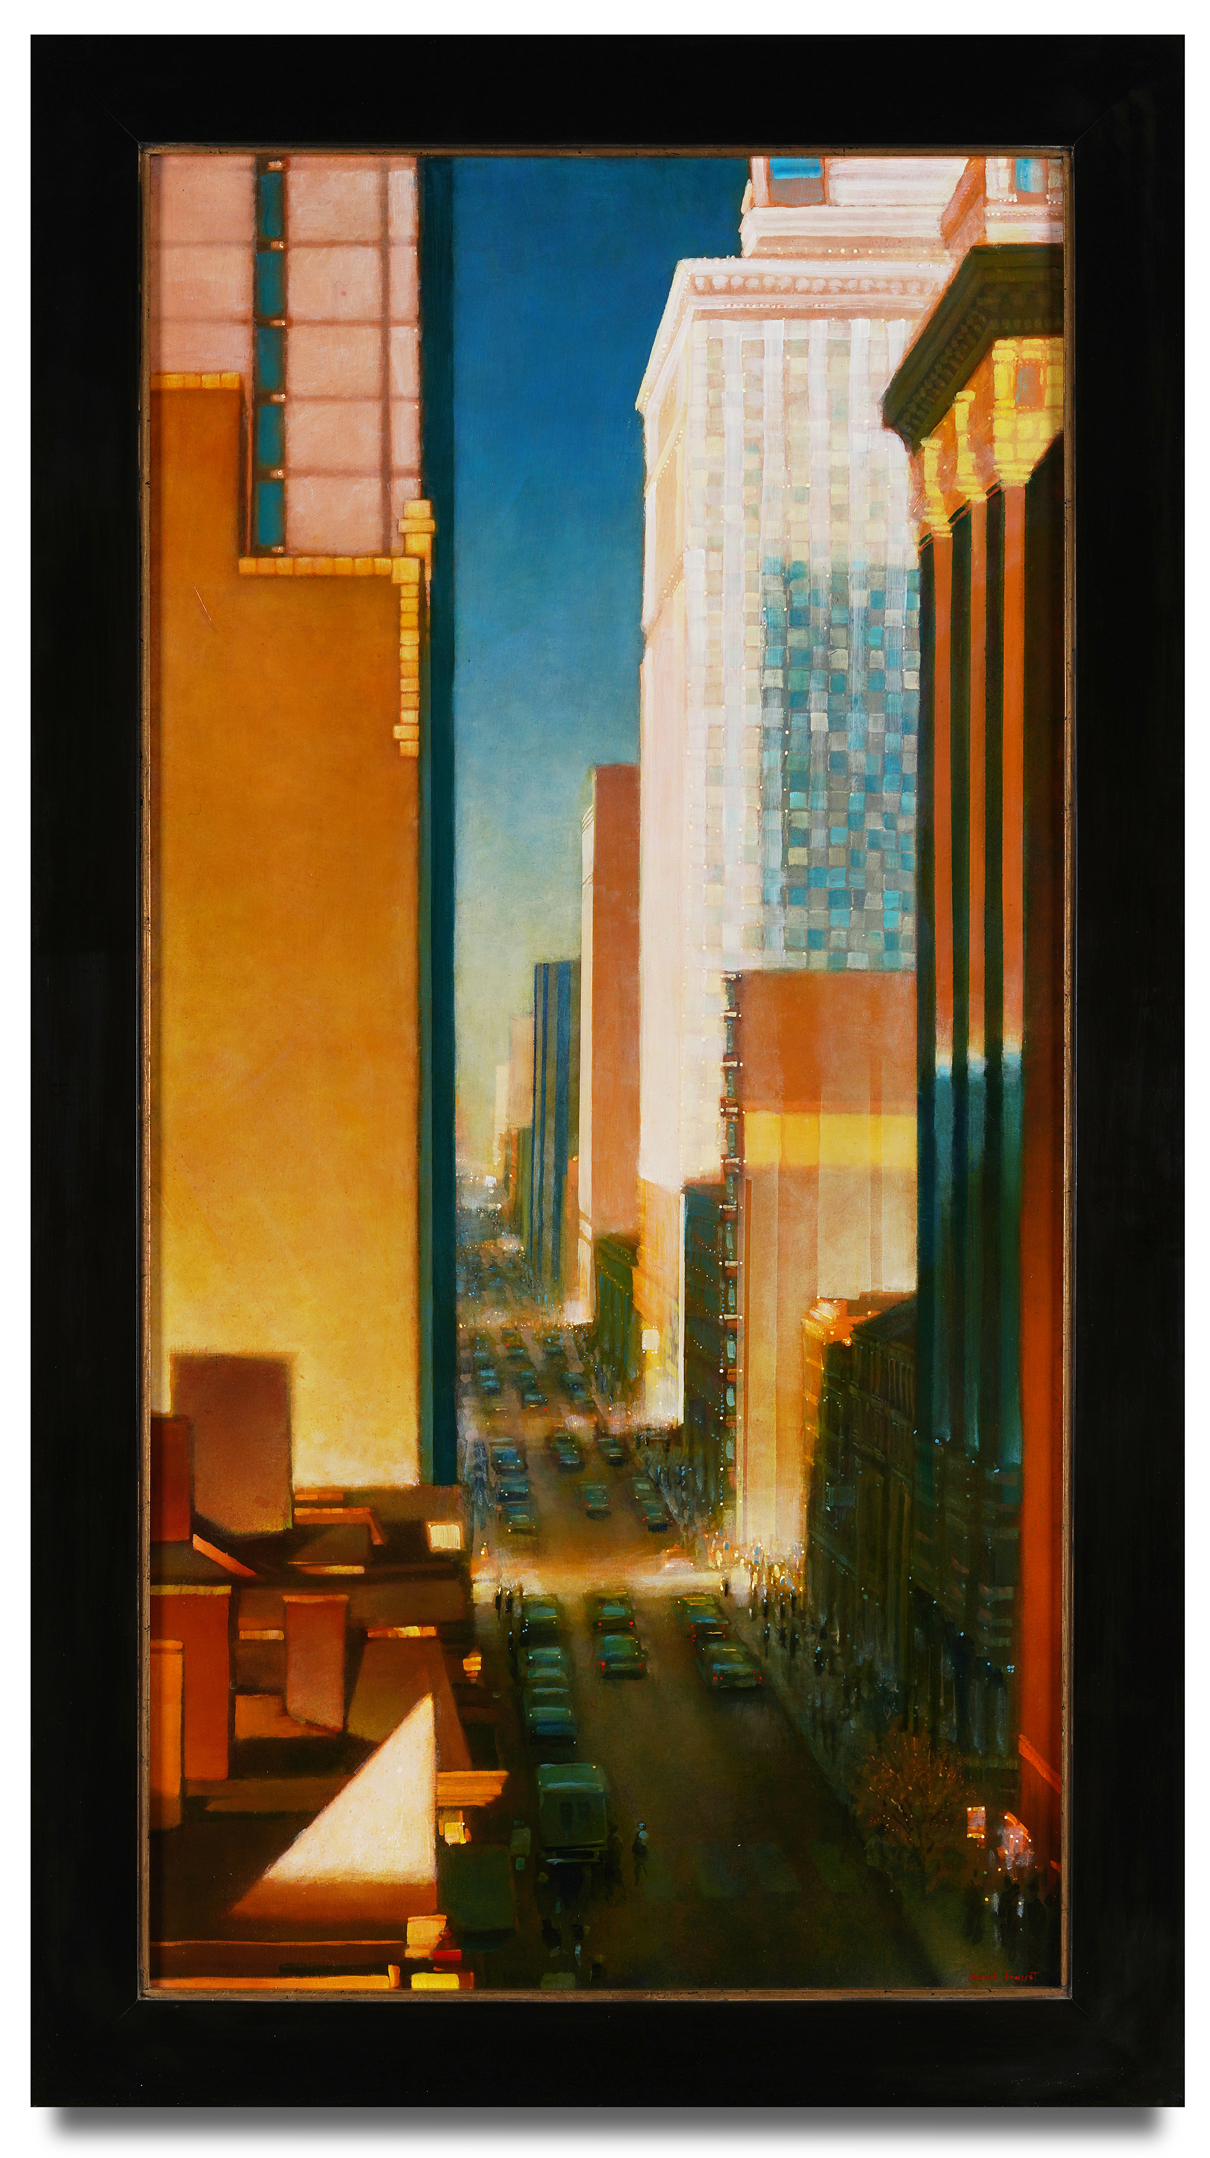 "Mark Innerst, ""View From A Hotel Window,"" 2018, oil on canvas, 48 x 24 inches; framed 54 1/4 x 30 1/4 inches"